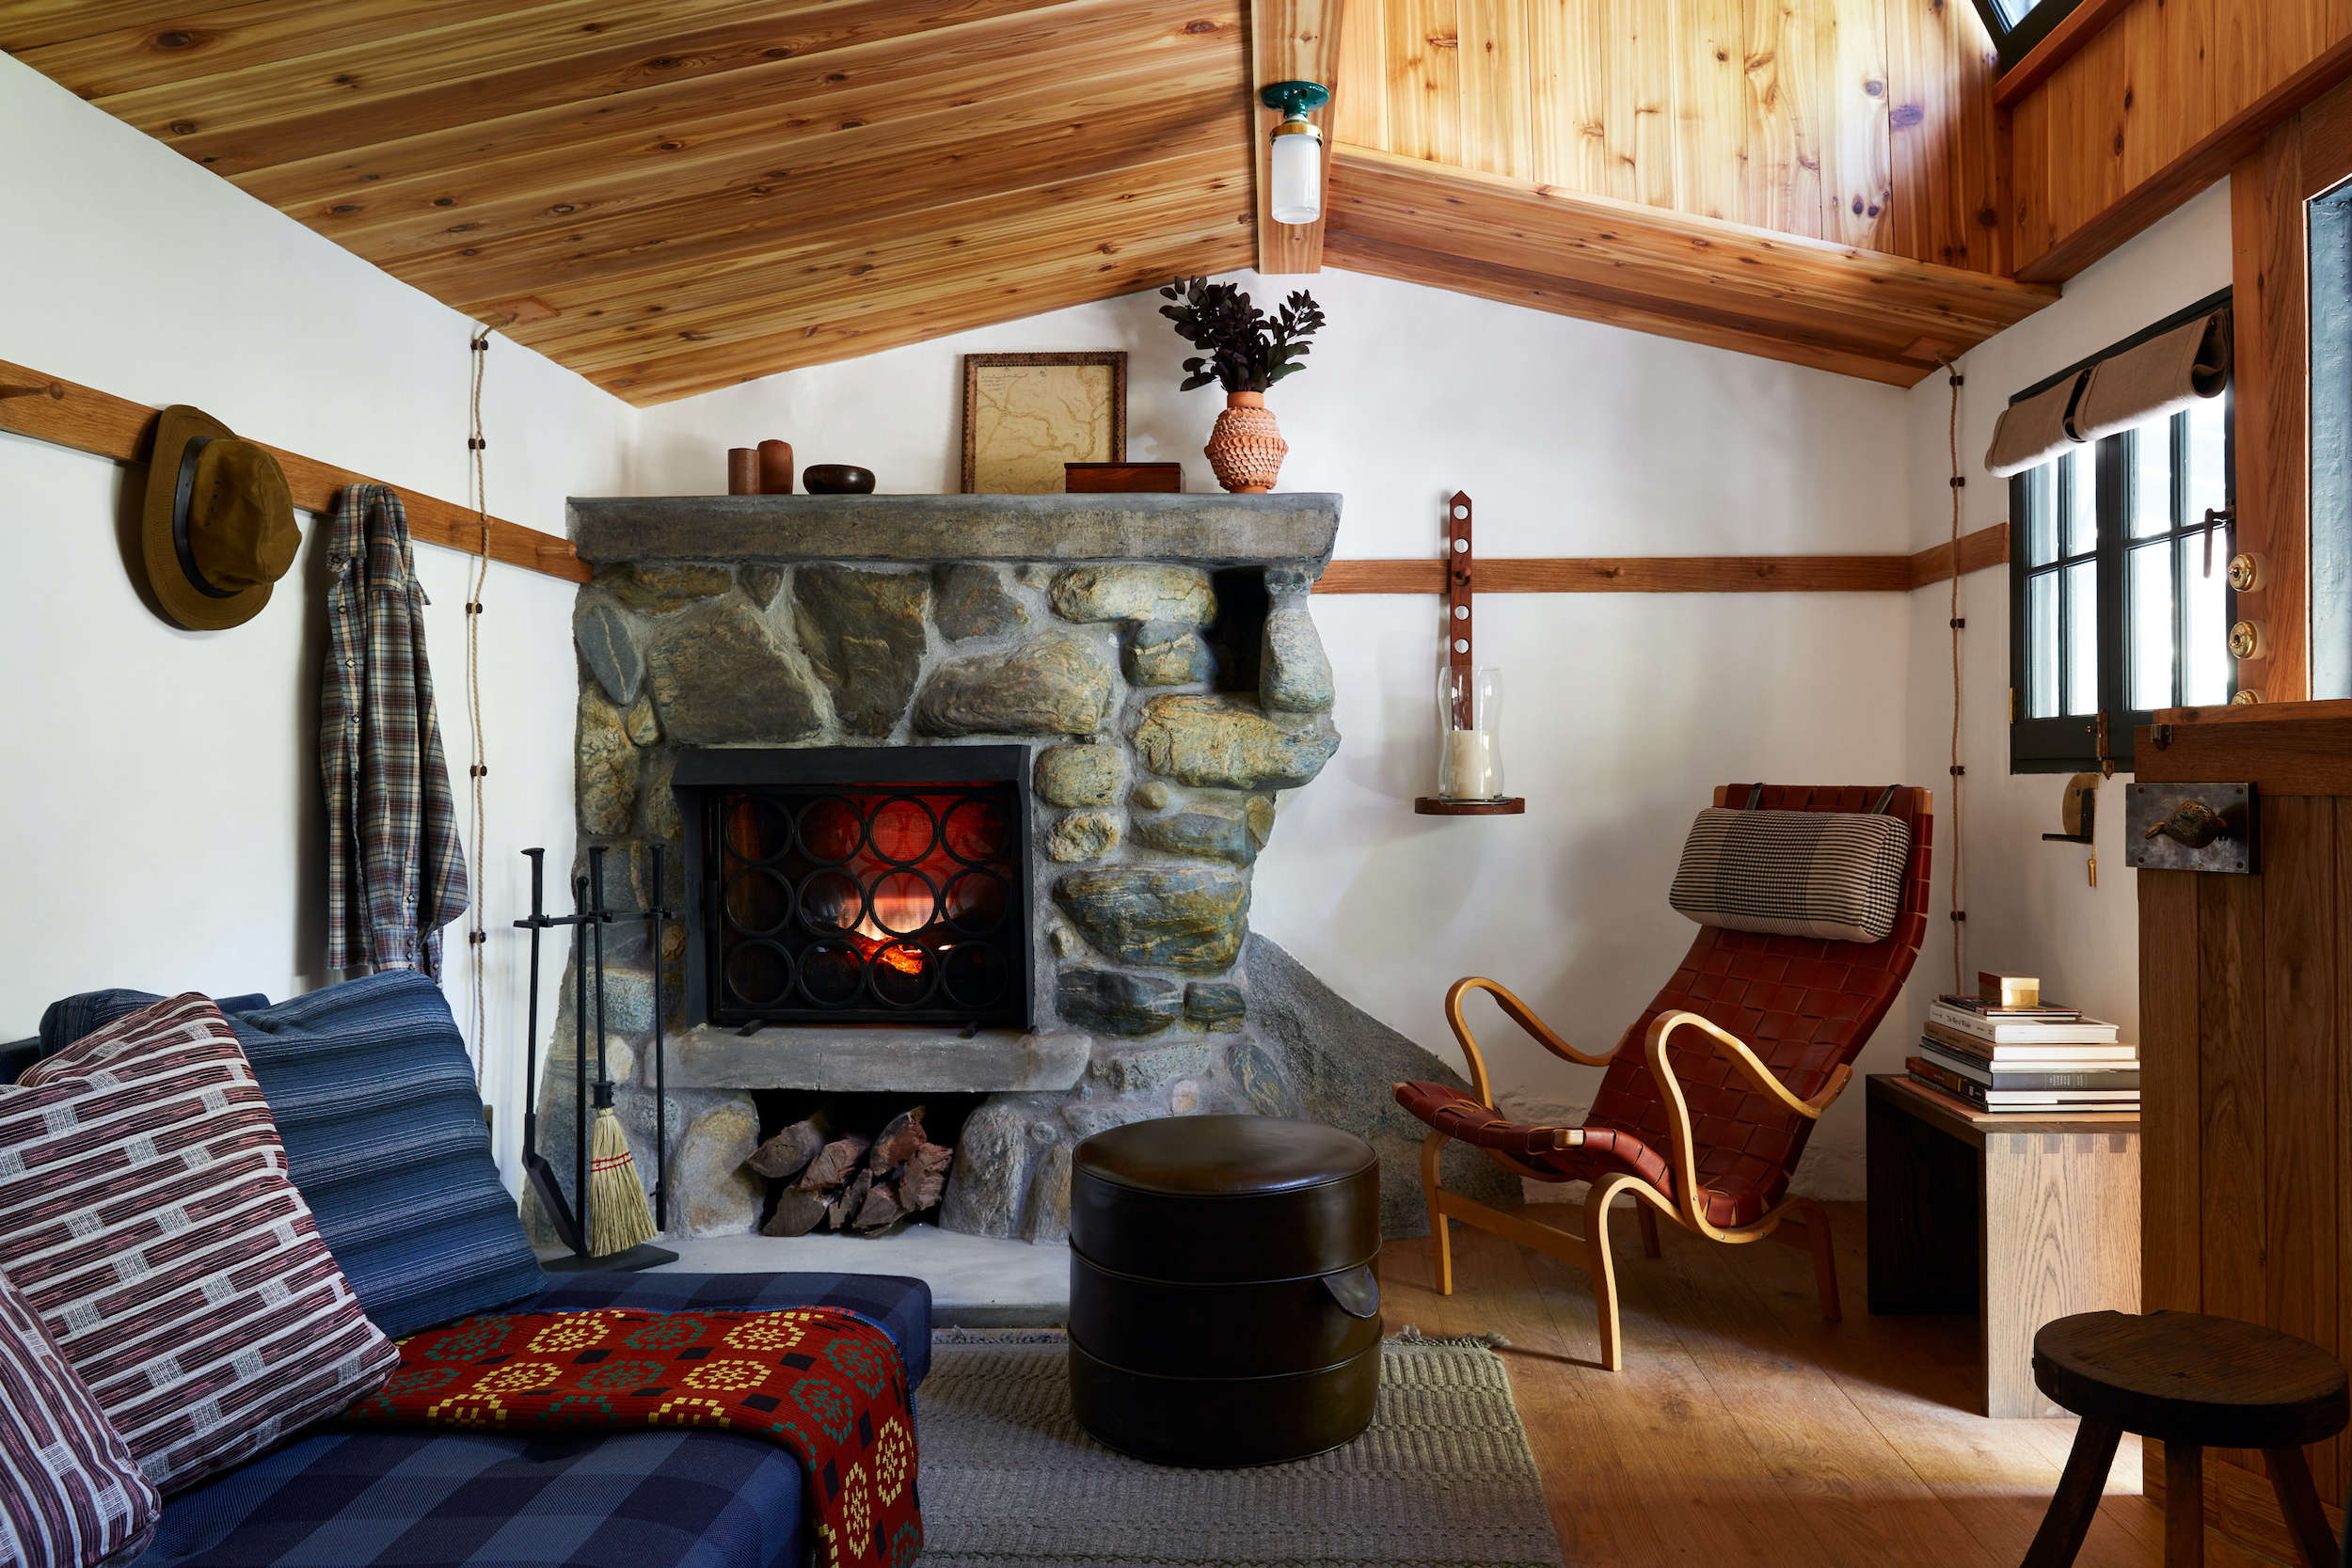 A Hollywood Director's Refined Off-the-Grid Cabin by Commune Design - Remodelista